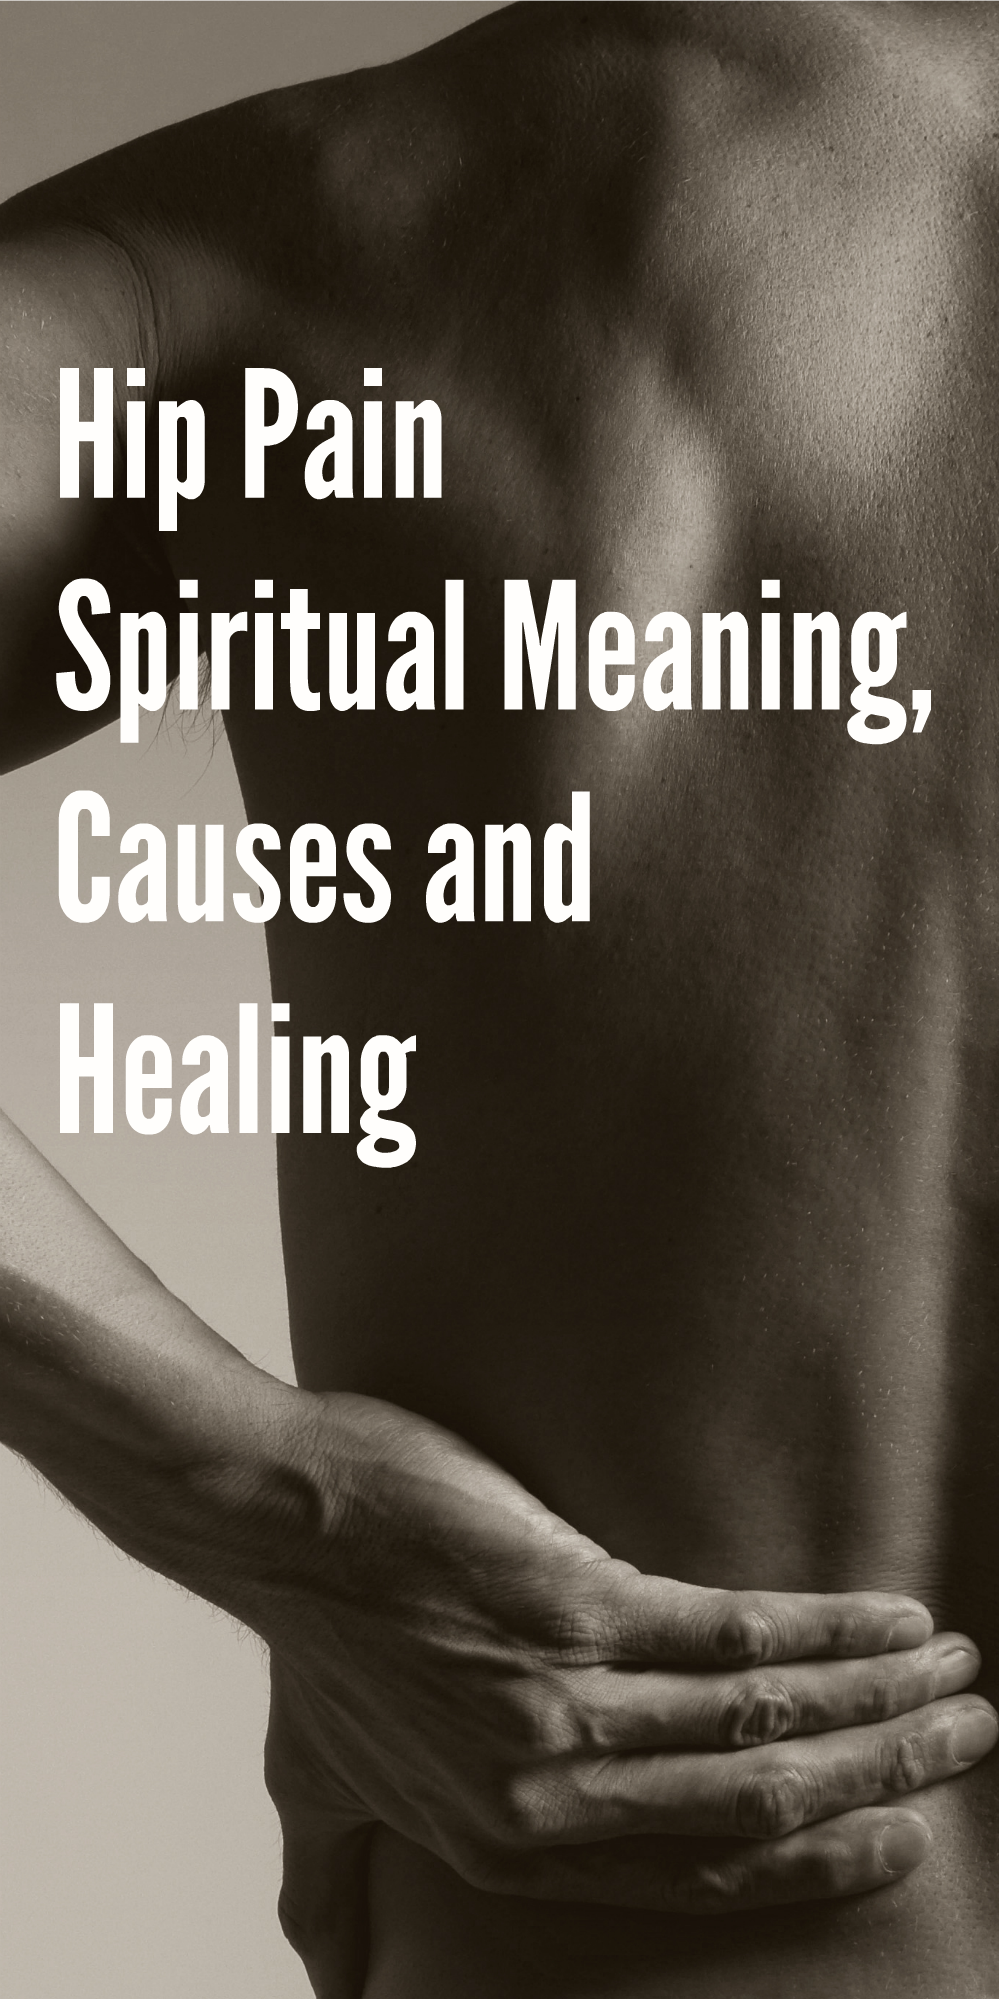 Hip Pain - Spiritual Meaning, Causes and Healing | MEDITATION/REIKI